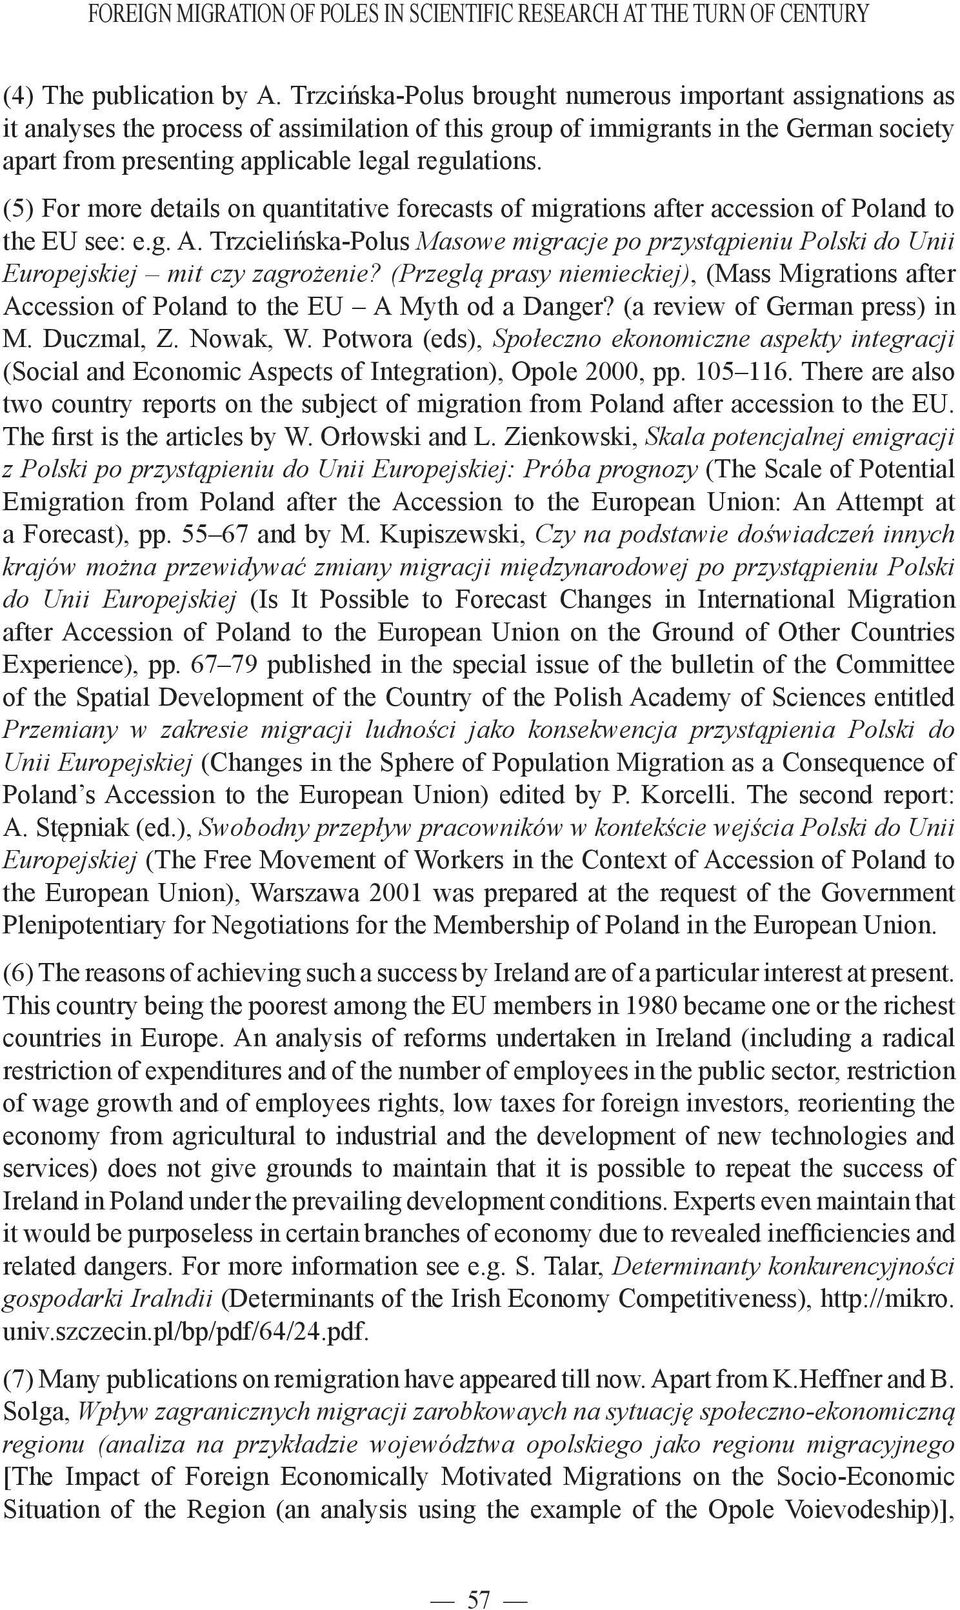 (5) For more details on quantitative forecasts of migrations after accession of Poland to the EU see: e.g. A.